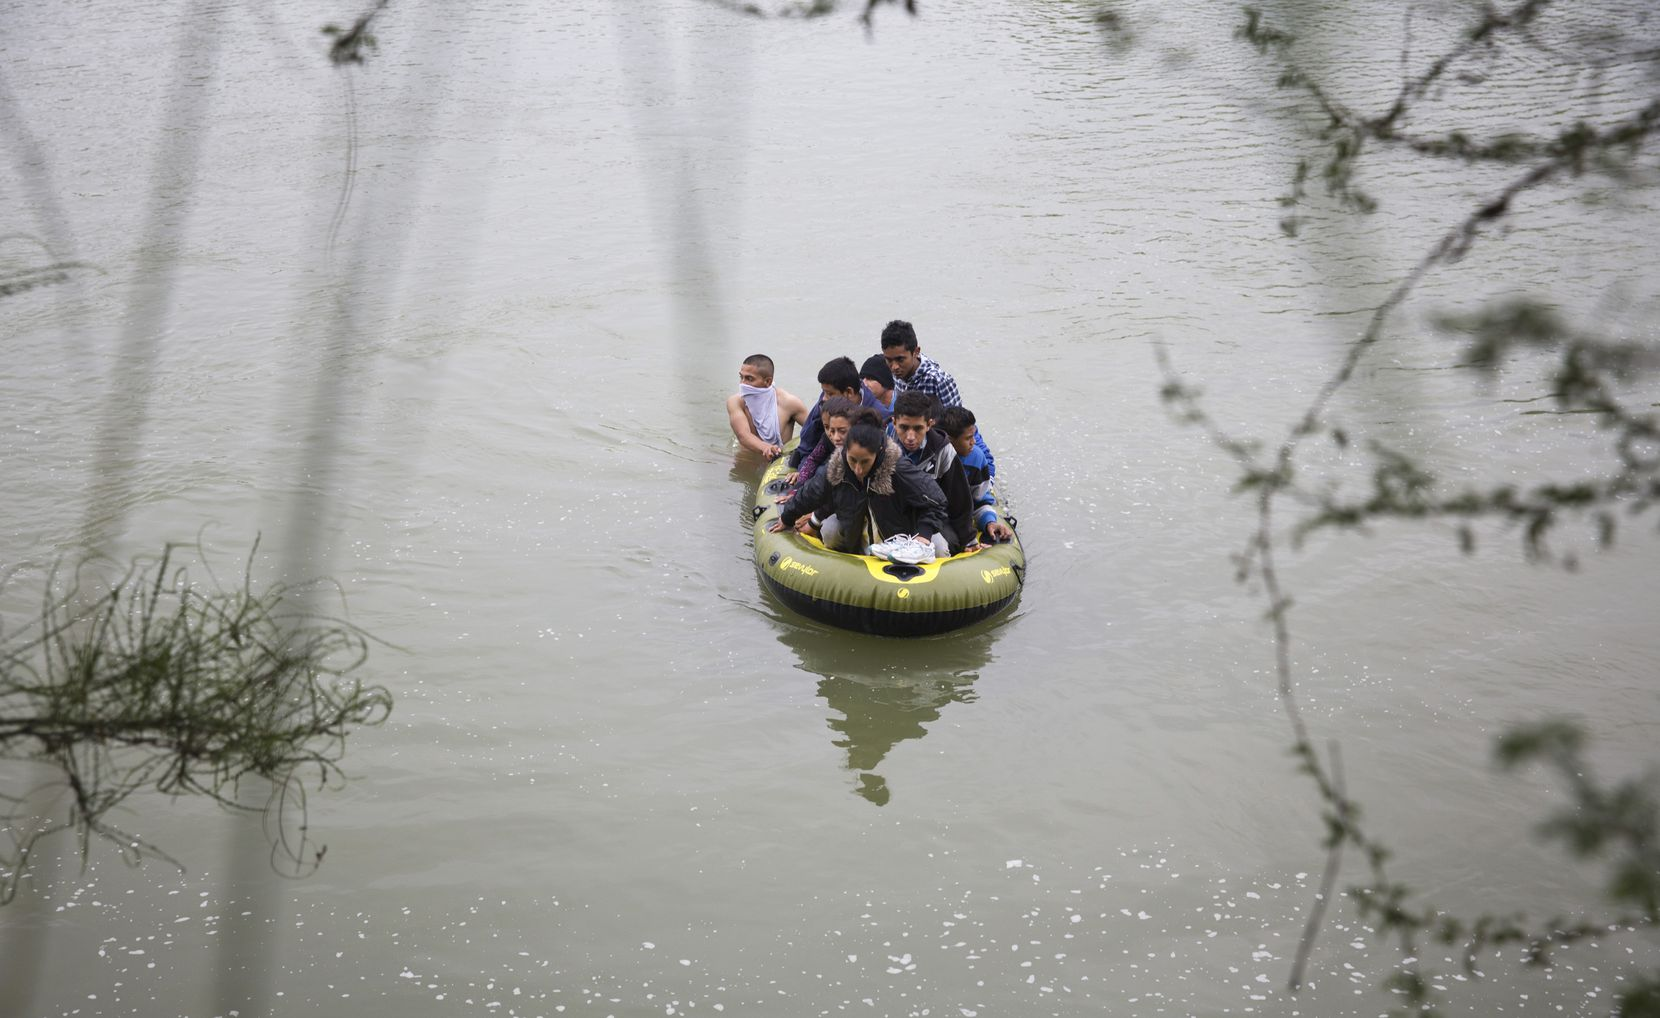 Two guides lead a raft full of migrants from Honduras and Guatemala across the Rio Grande in full view of the U.S. Border Patrol, at the border between Mexico and the U.S.